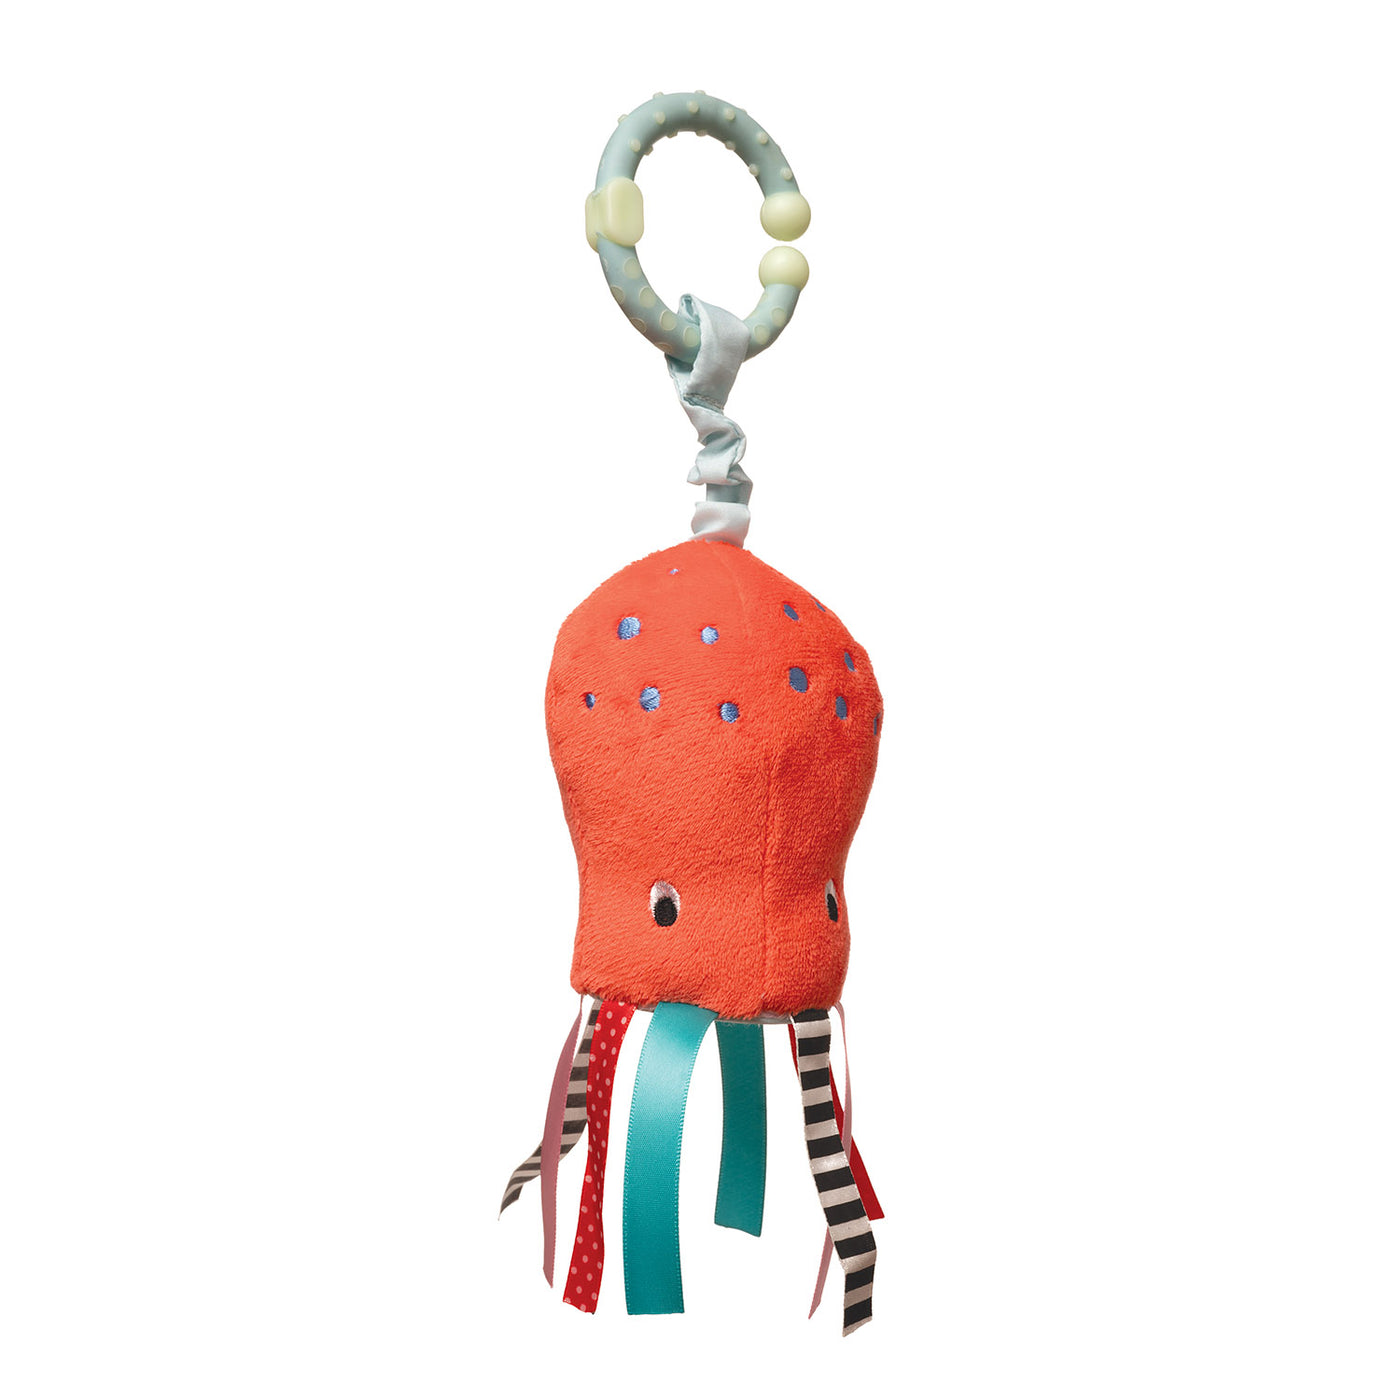 Under the Sea Octopus Activity Toy